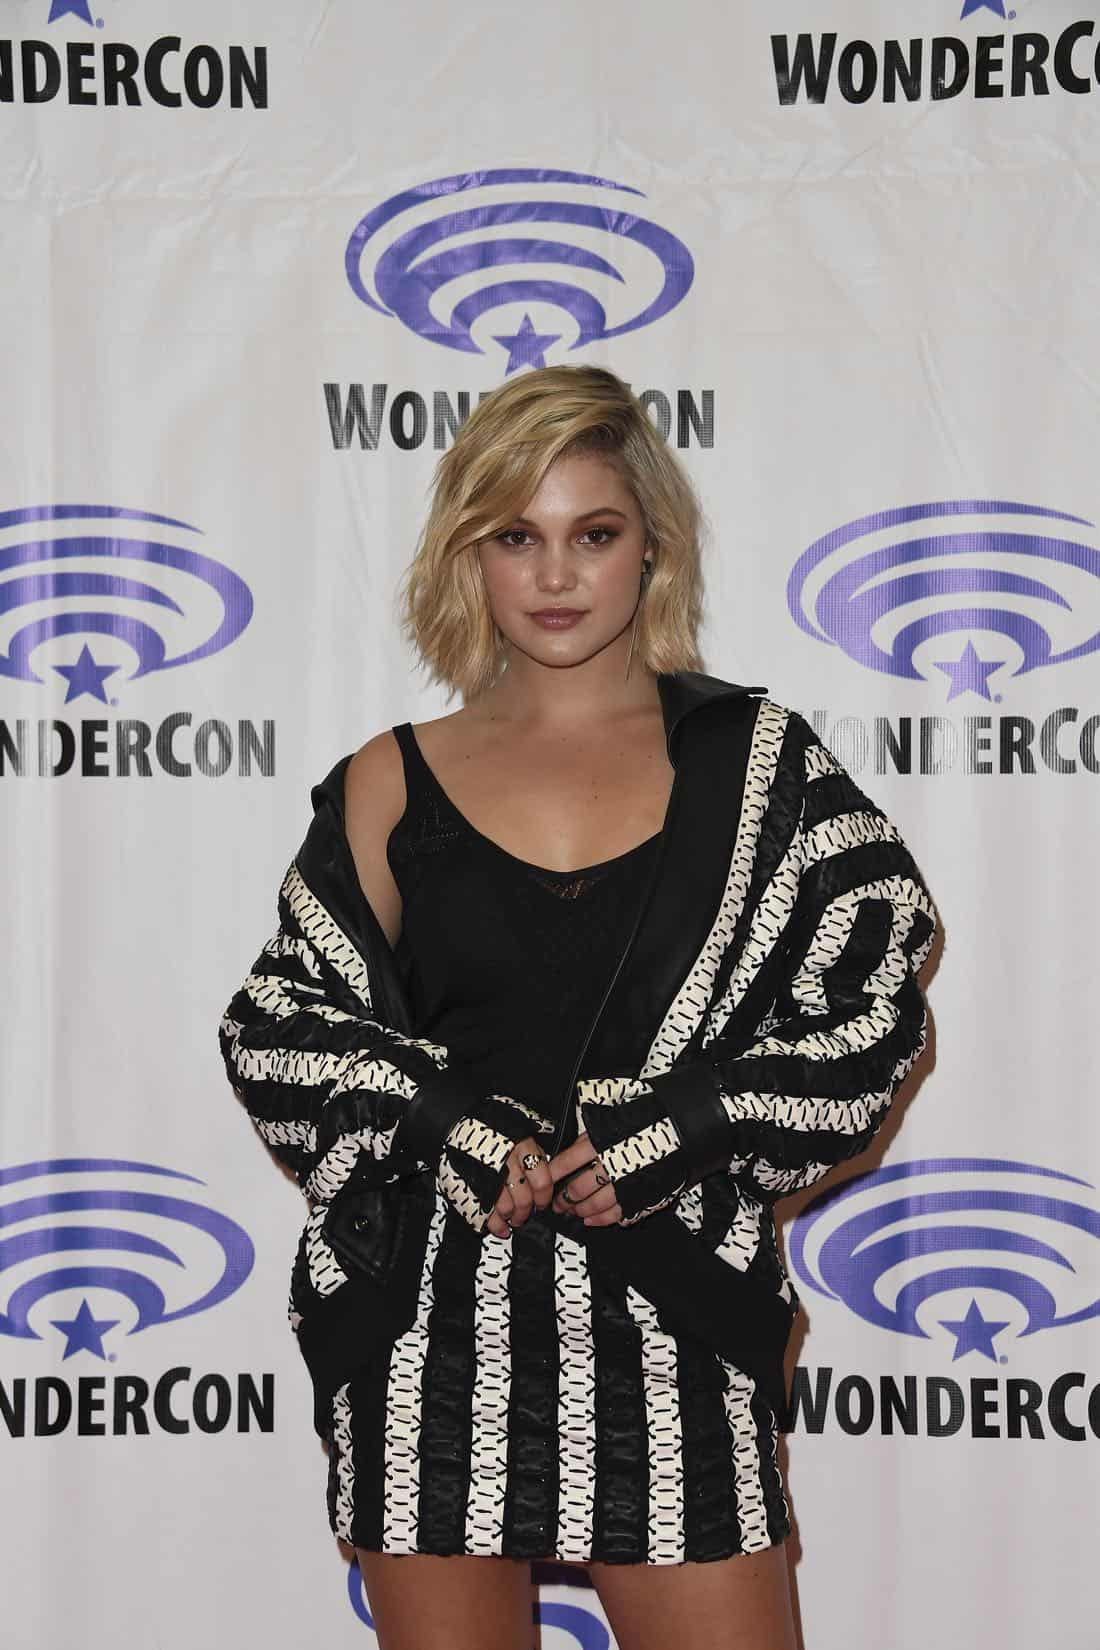 "MARVEL'S CLOAK & DAGGER - The executive producers and cast of Freeform's highly-anticipated new original series ""Marvel's Cloak & Dagger"" attended WonderCon to promote the June 7th premiere. (Freeform/Aaron Poole) OLIVIA HOLT"